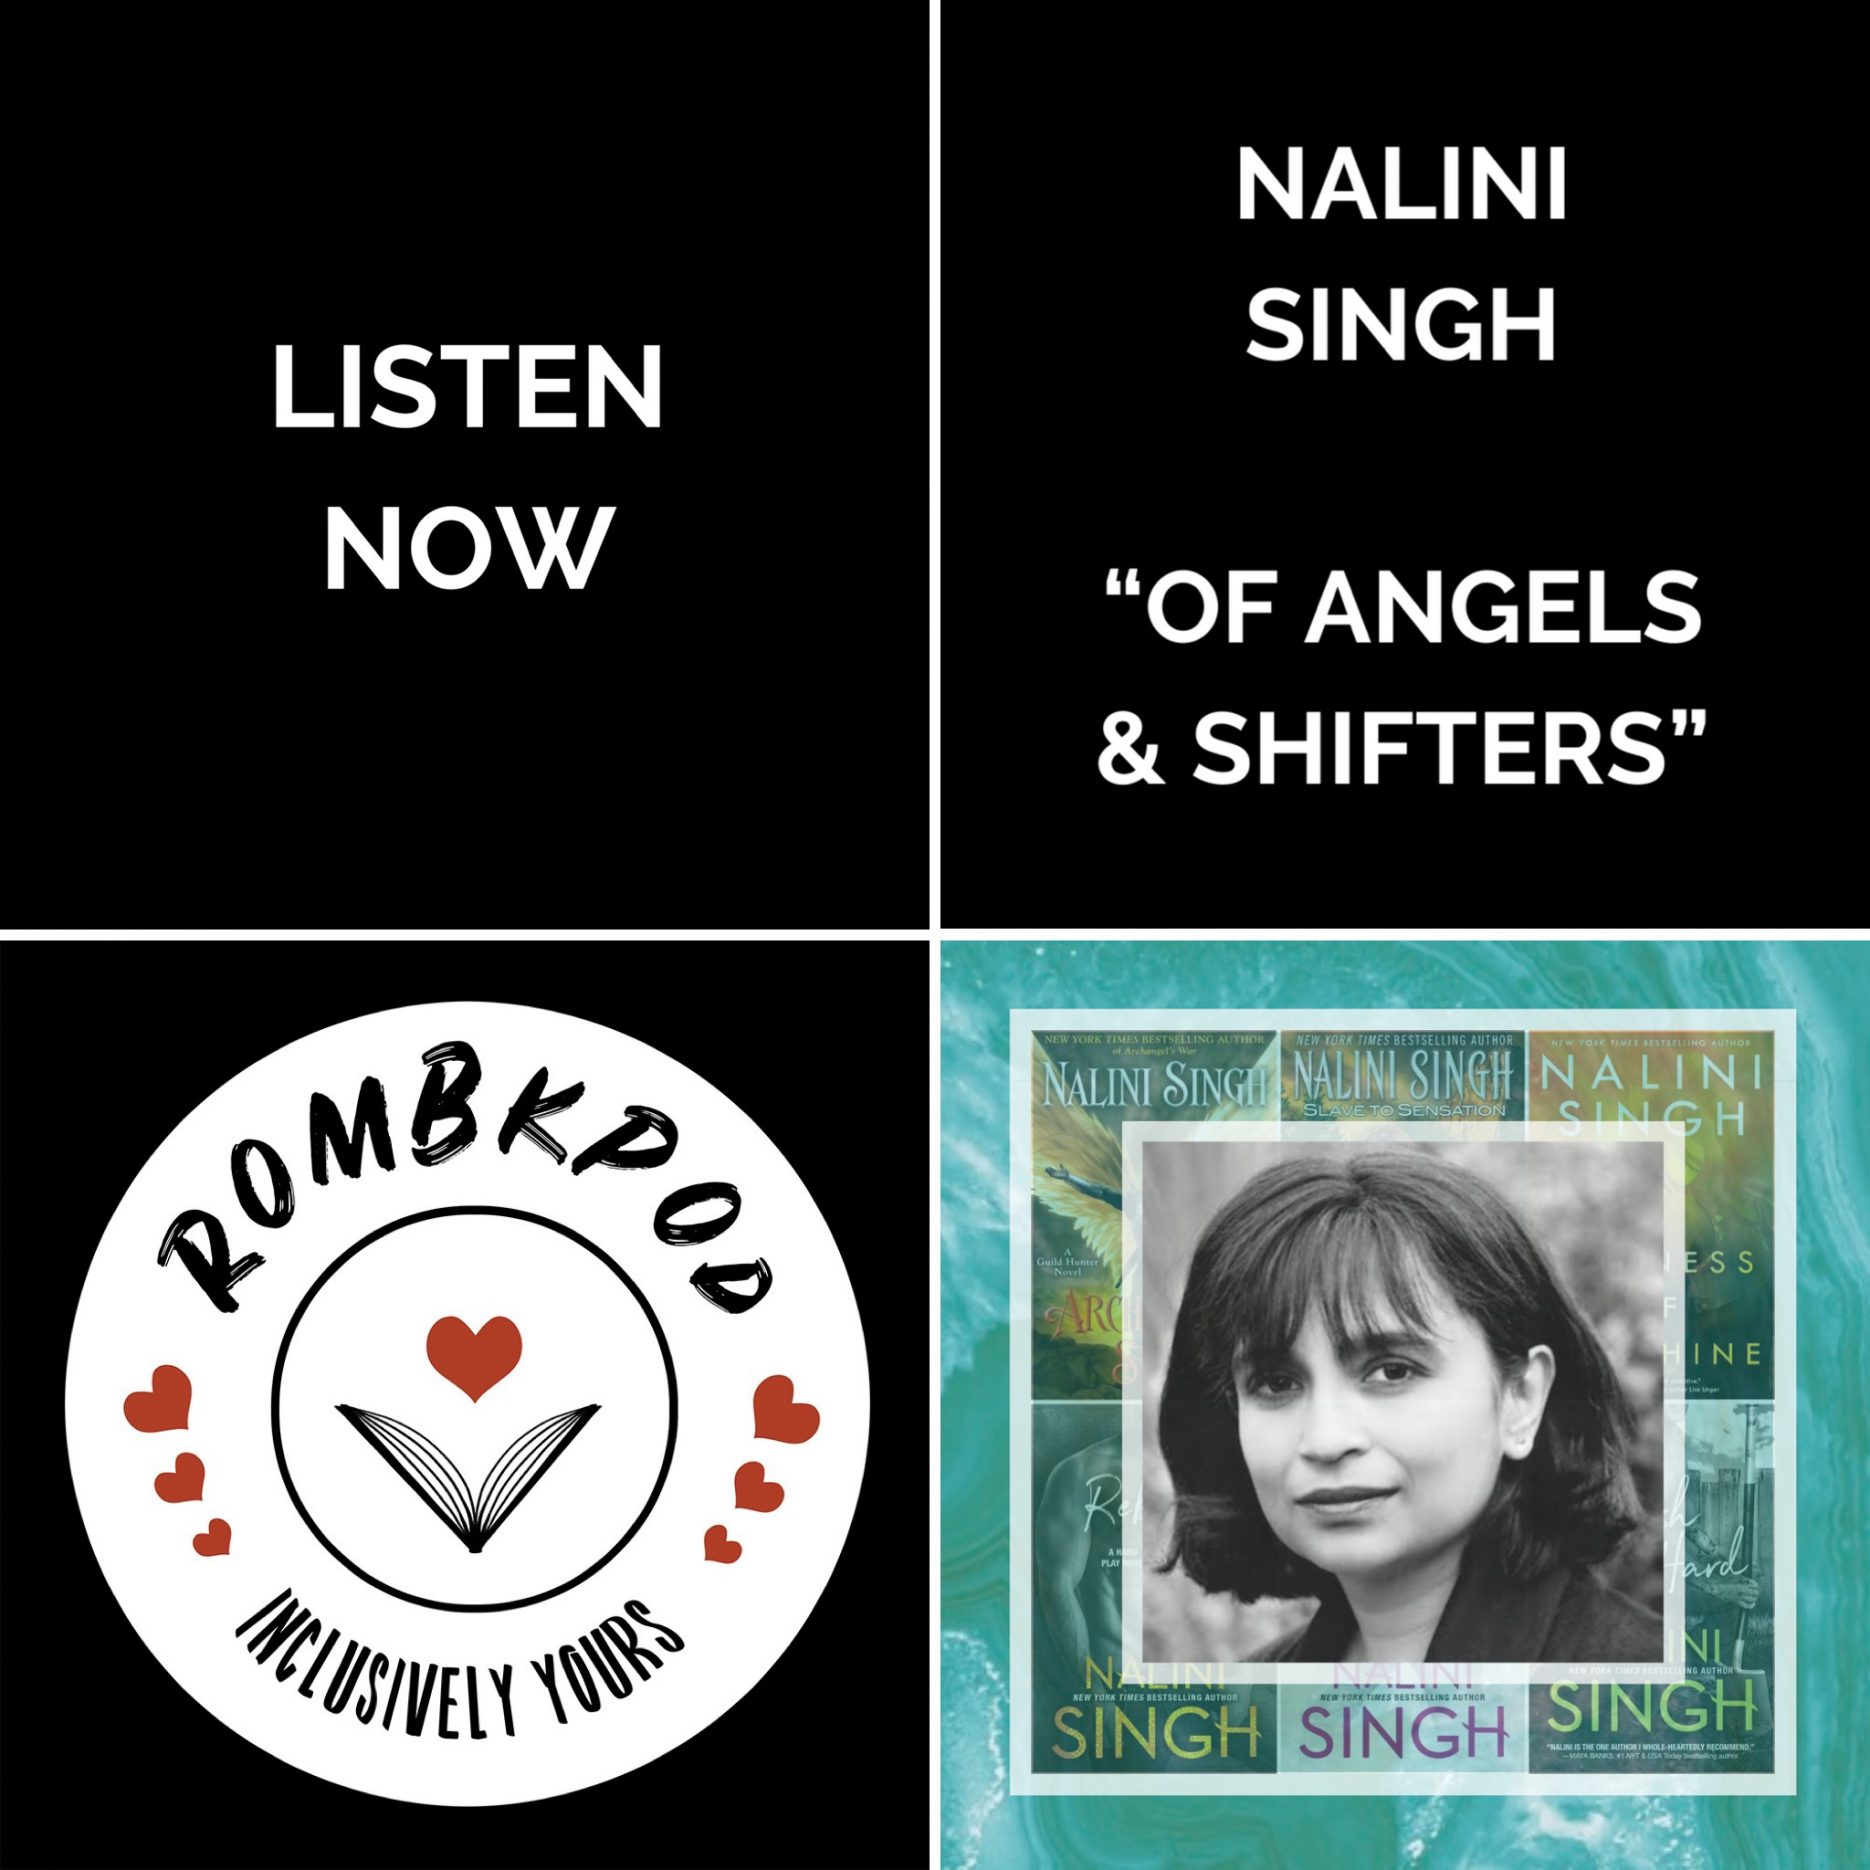 "IMAGE: lower left corner, RomBkPod heart logo; lower right corner, Nalini Singh headshot; IMAGE TEXT: Listen Now, Nalini Singh, ""Of Angels & Shifters"""